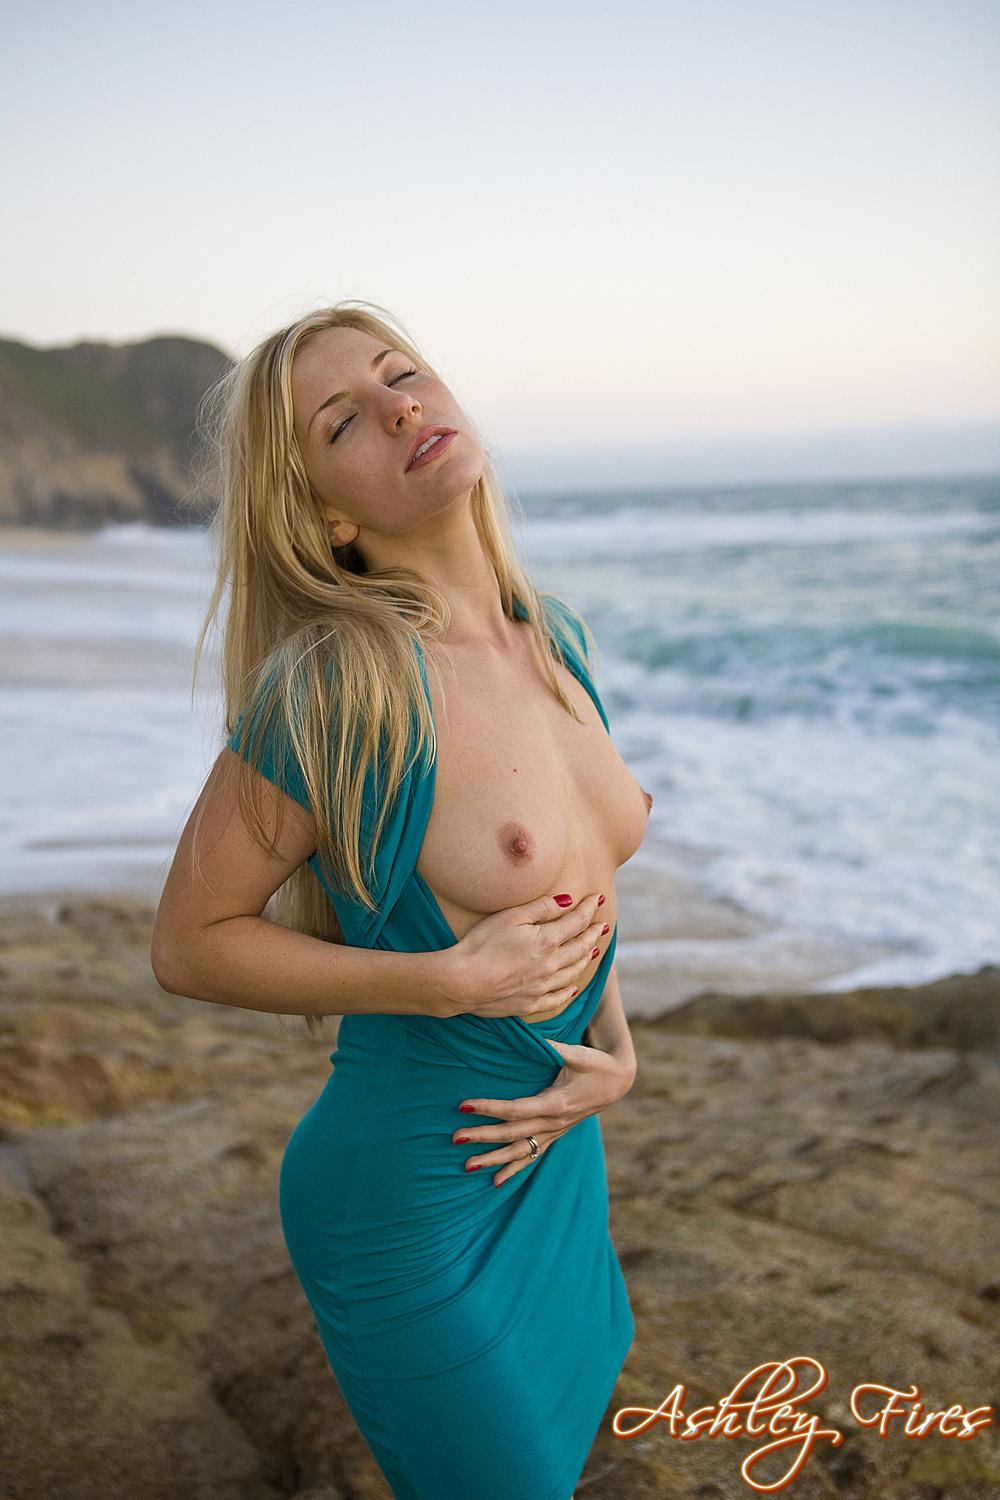 Ashley fires on the beach for